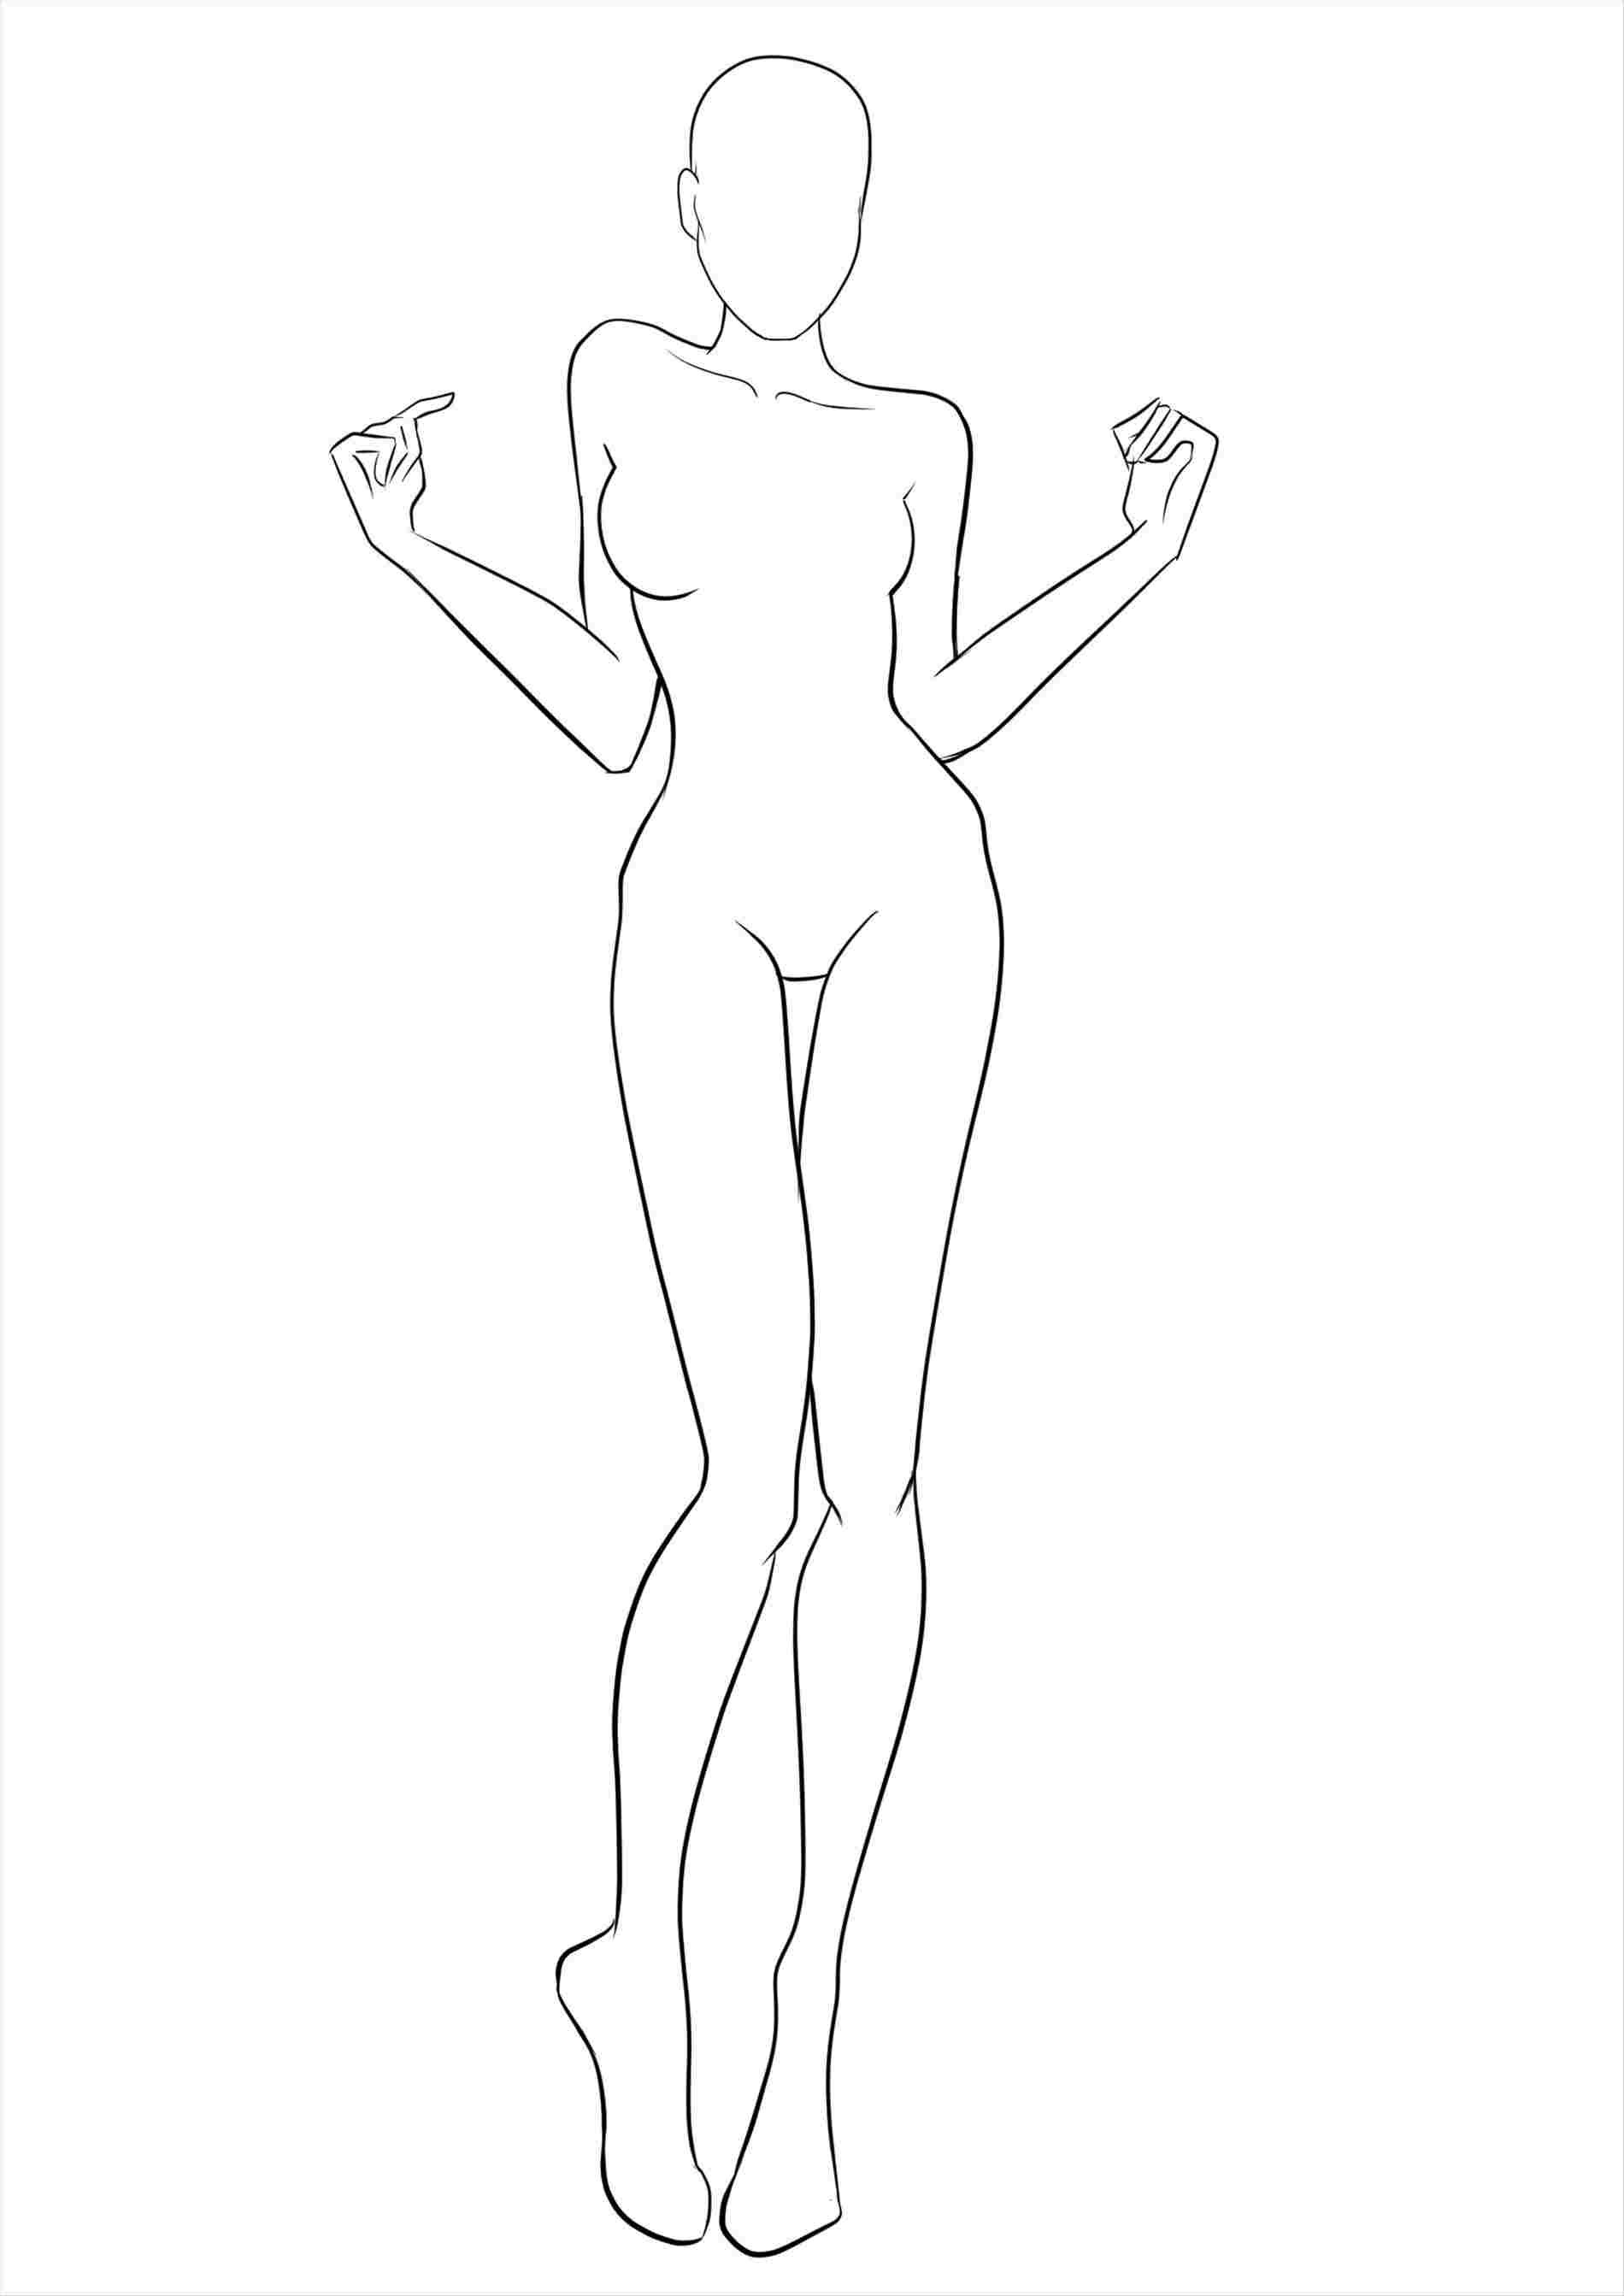 Female Body Outline Sketch at PaintingValley.com.